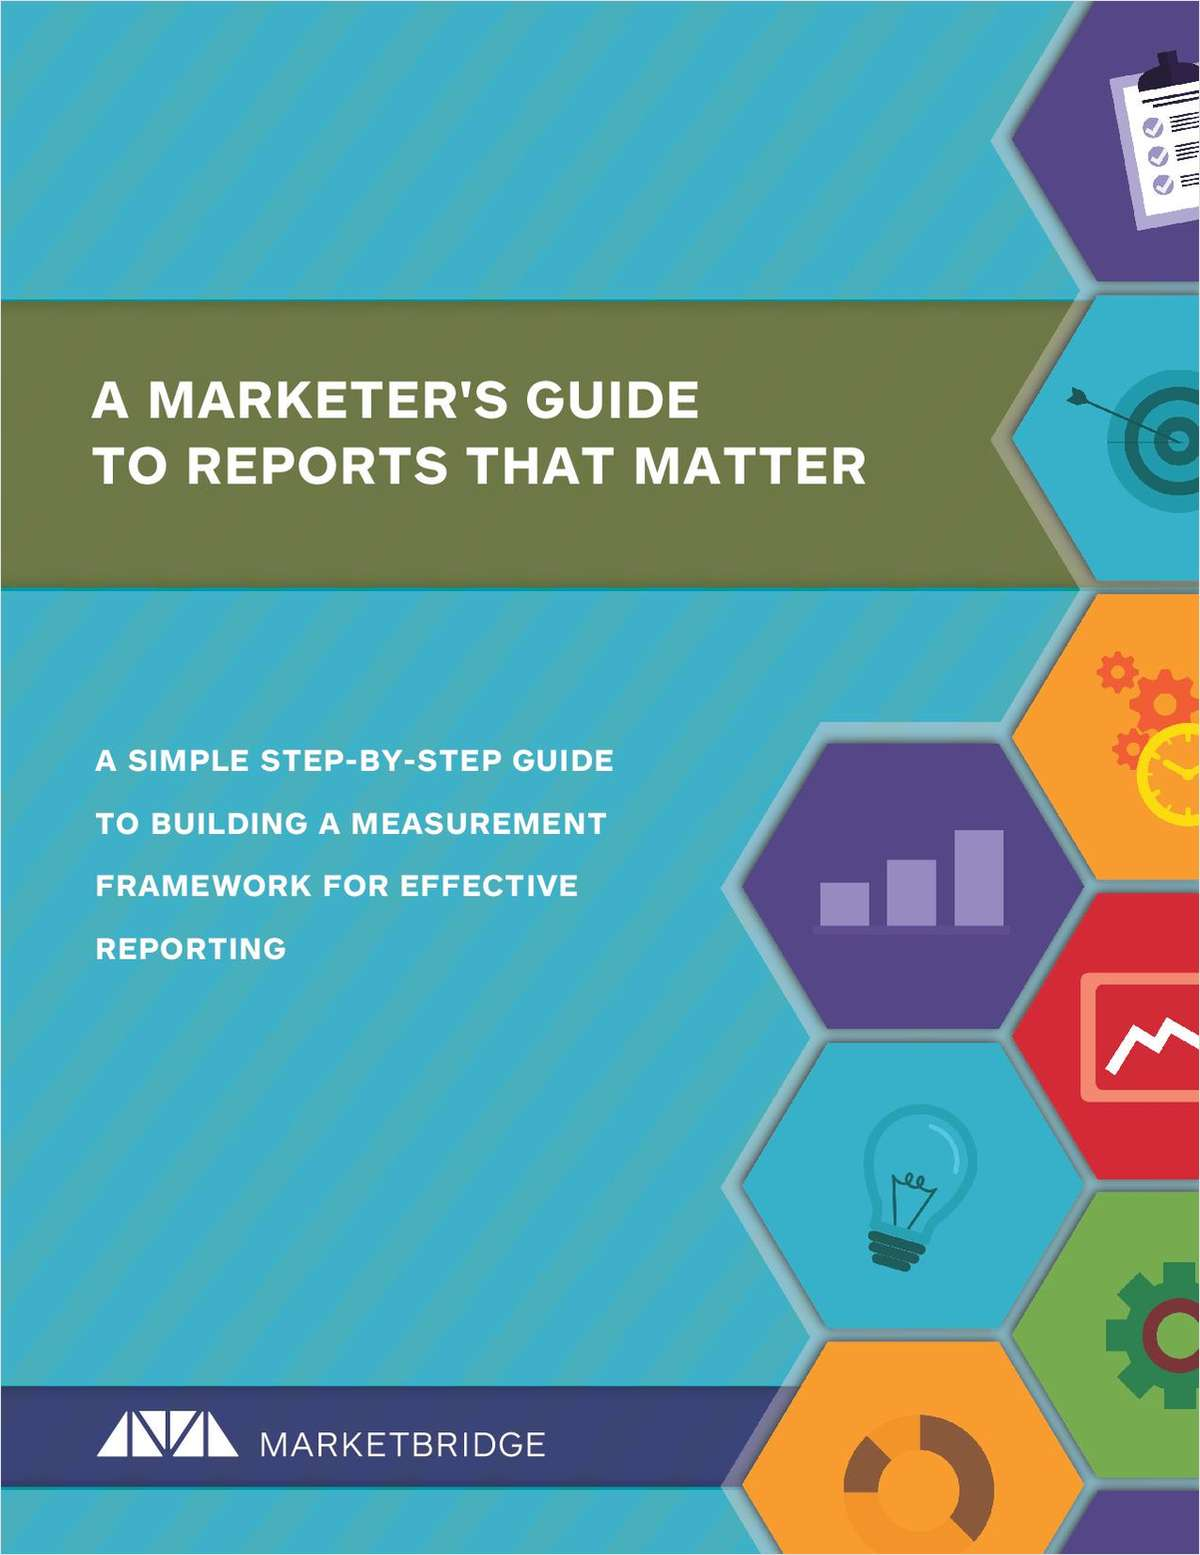 Marketer's Guide to Reports That Matter